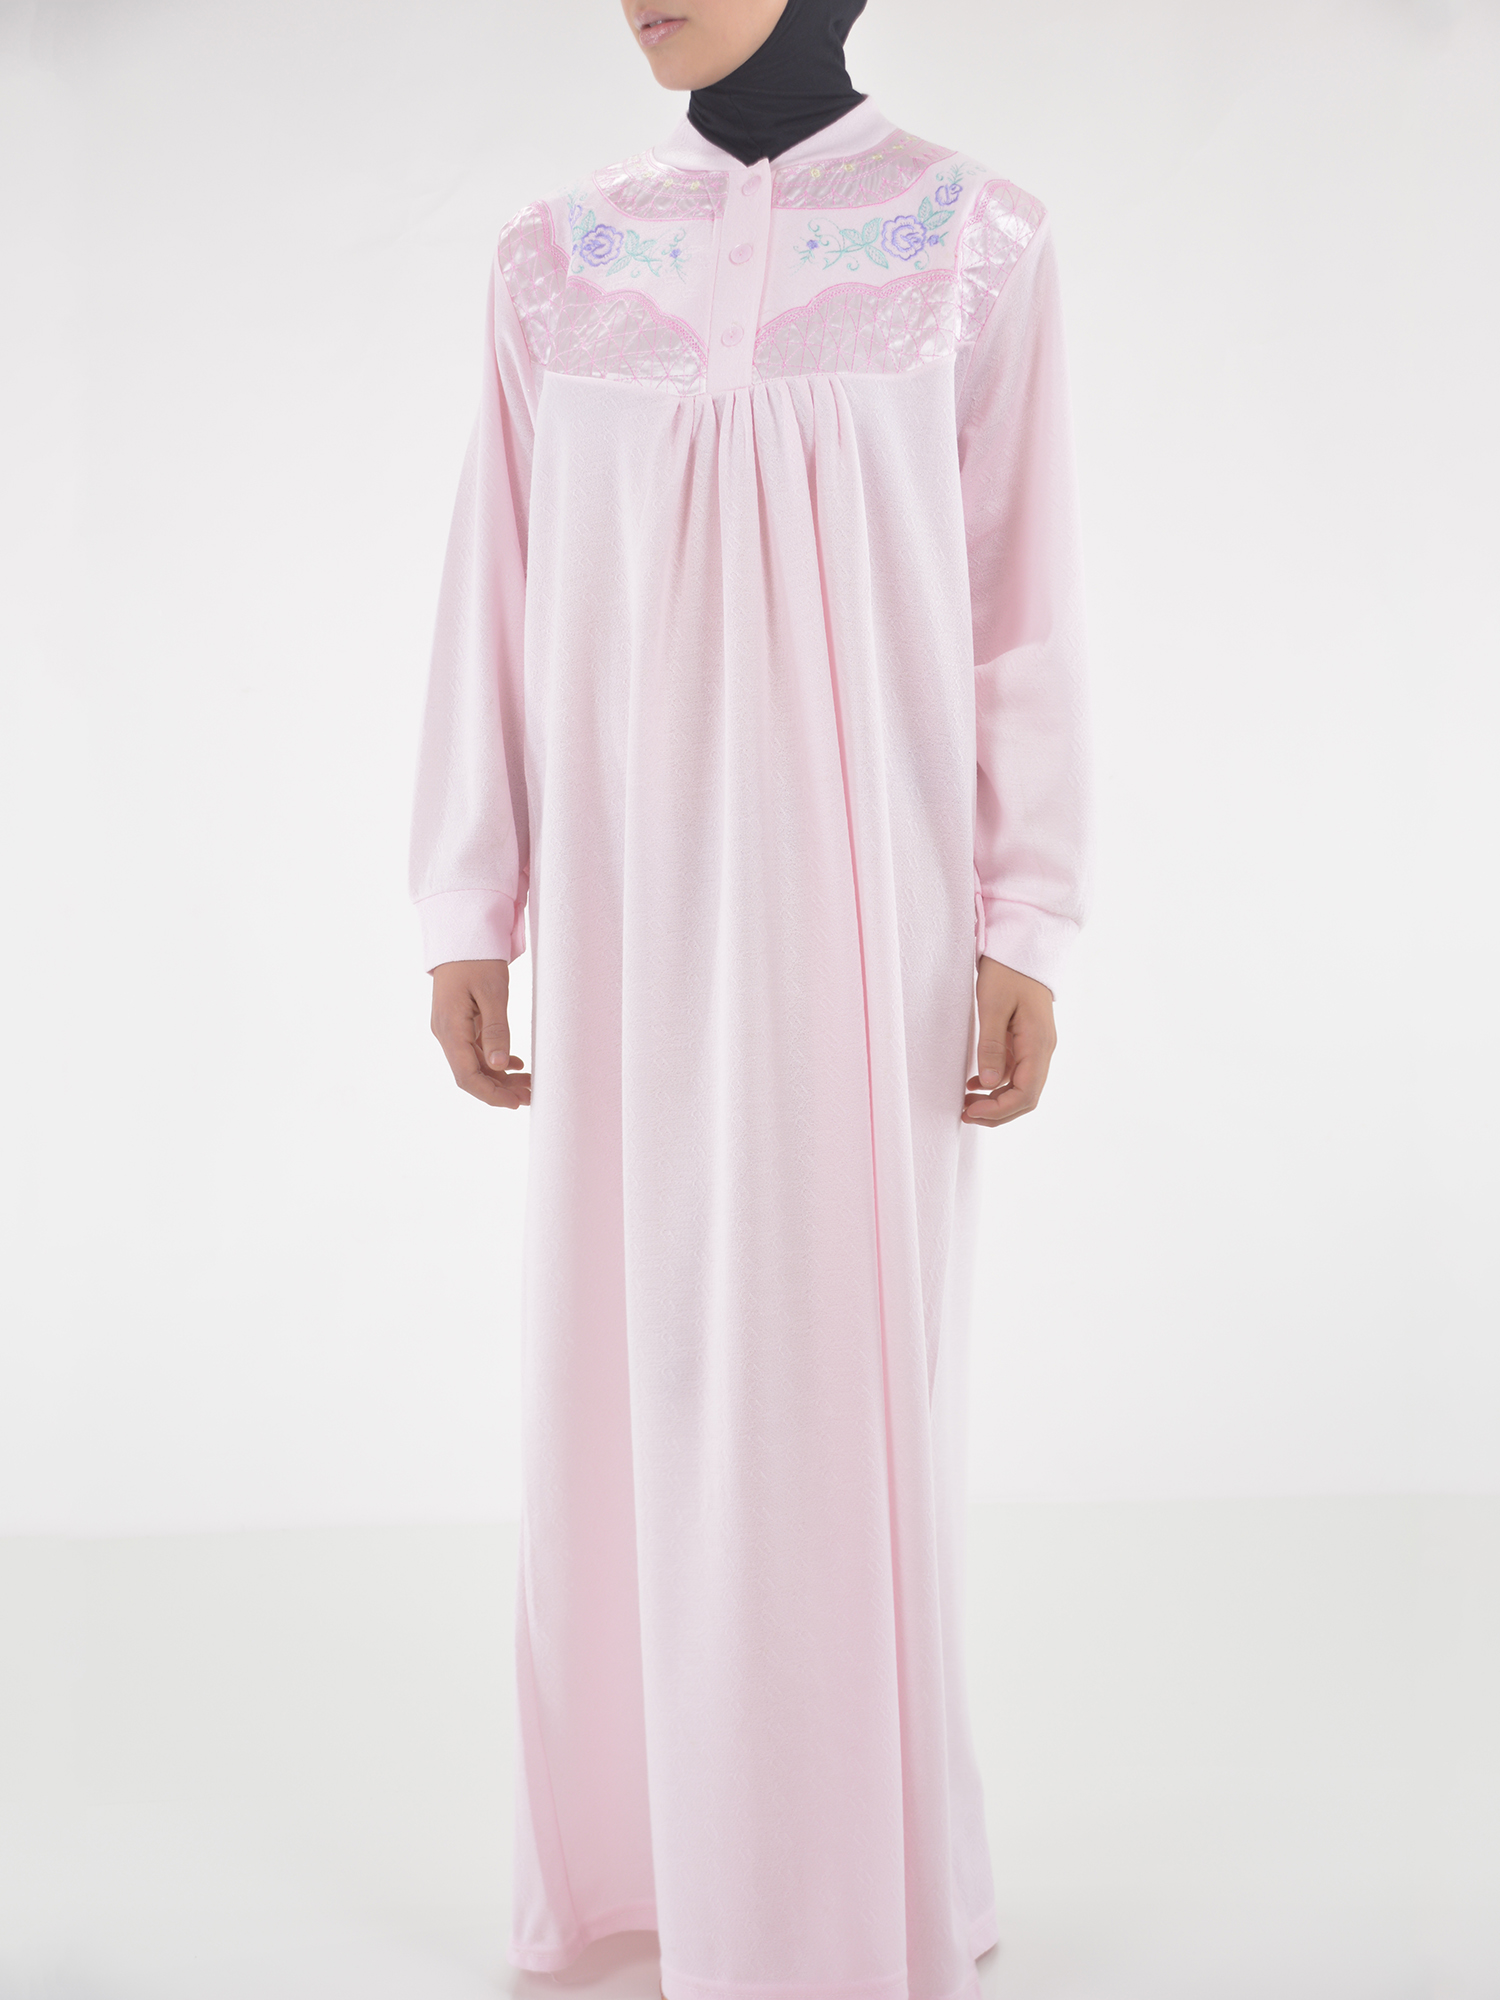 Rose Embroidered Cotton Nightgown | NG102 -